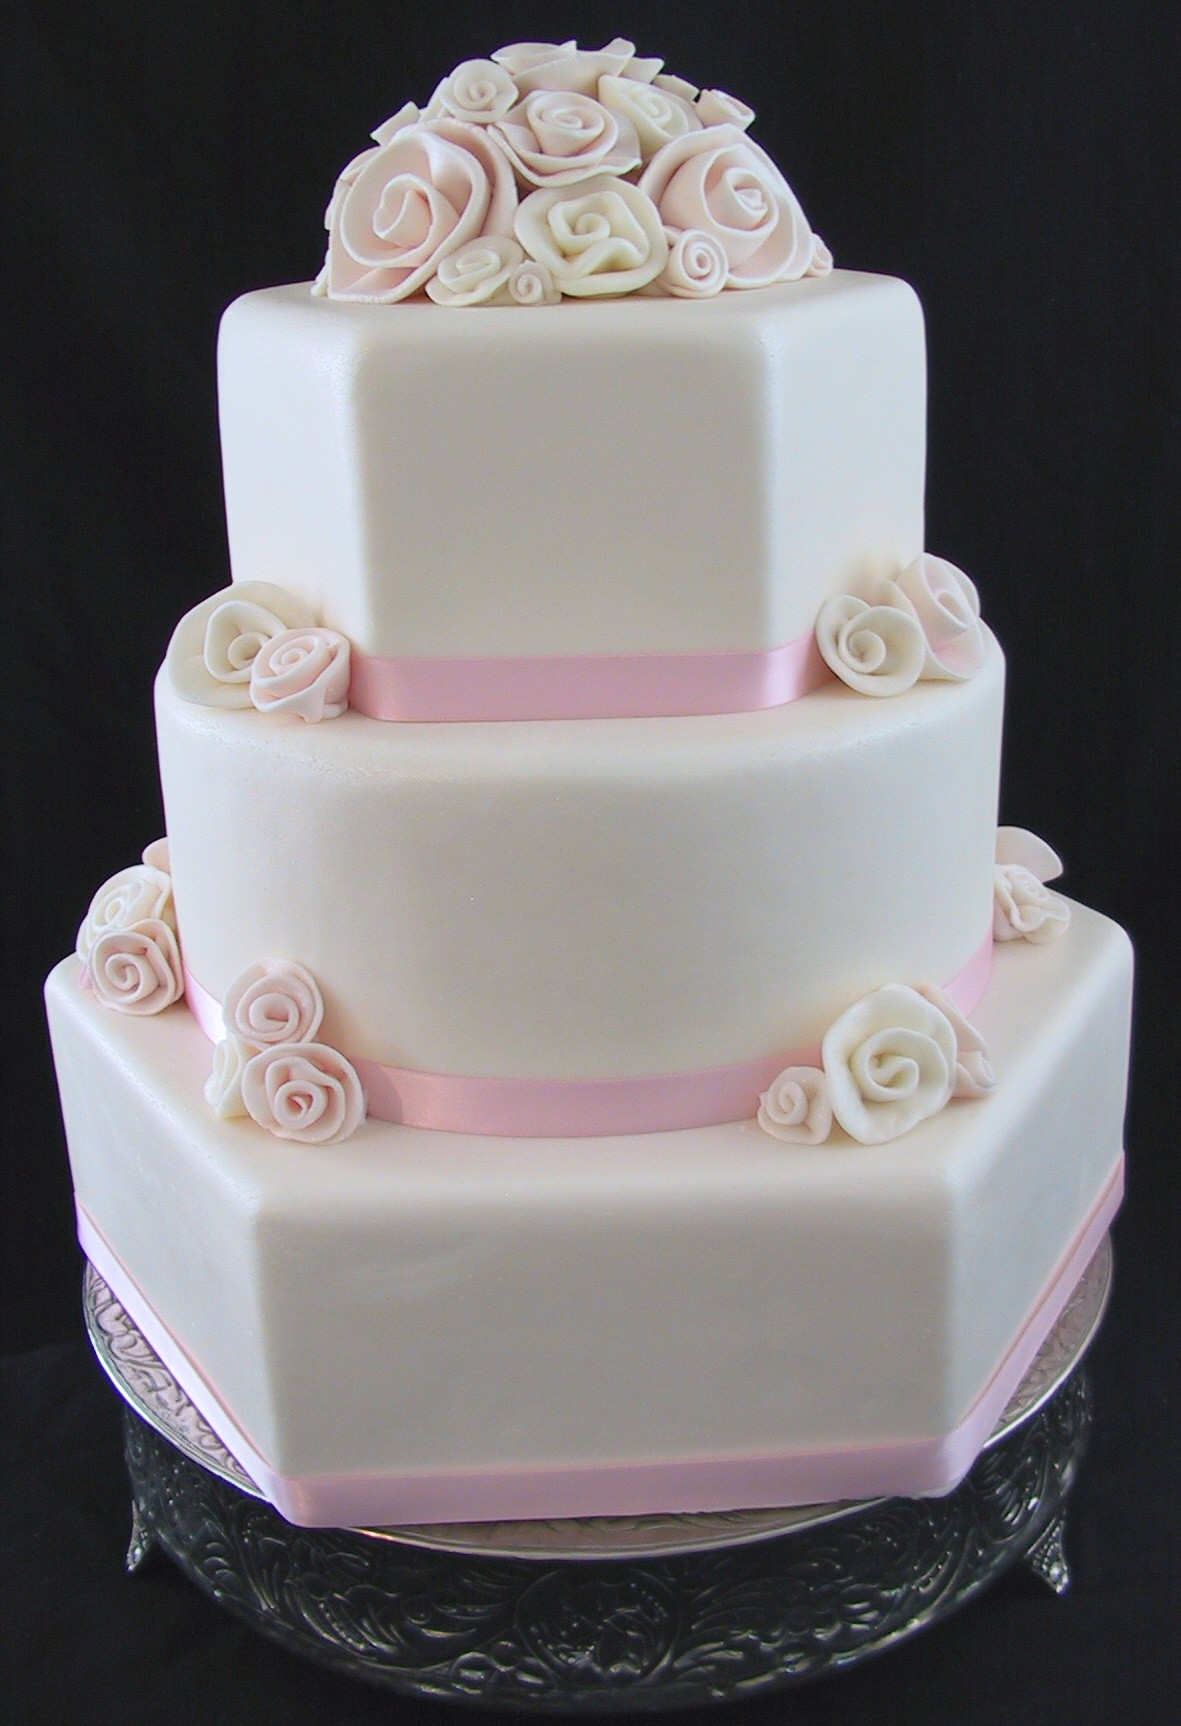 Pink And White Wedding Cakes  Fondant Wedding Cake Pink White Rolled Roses Lexington KY